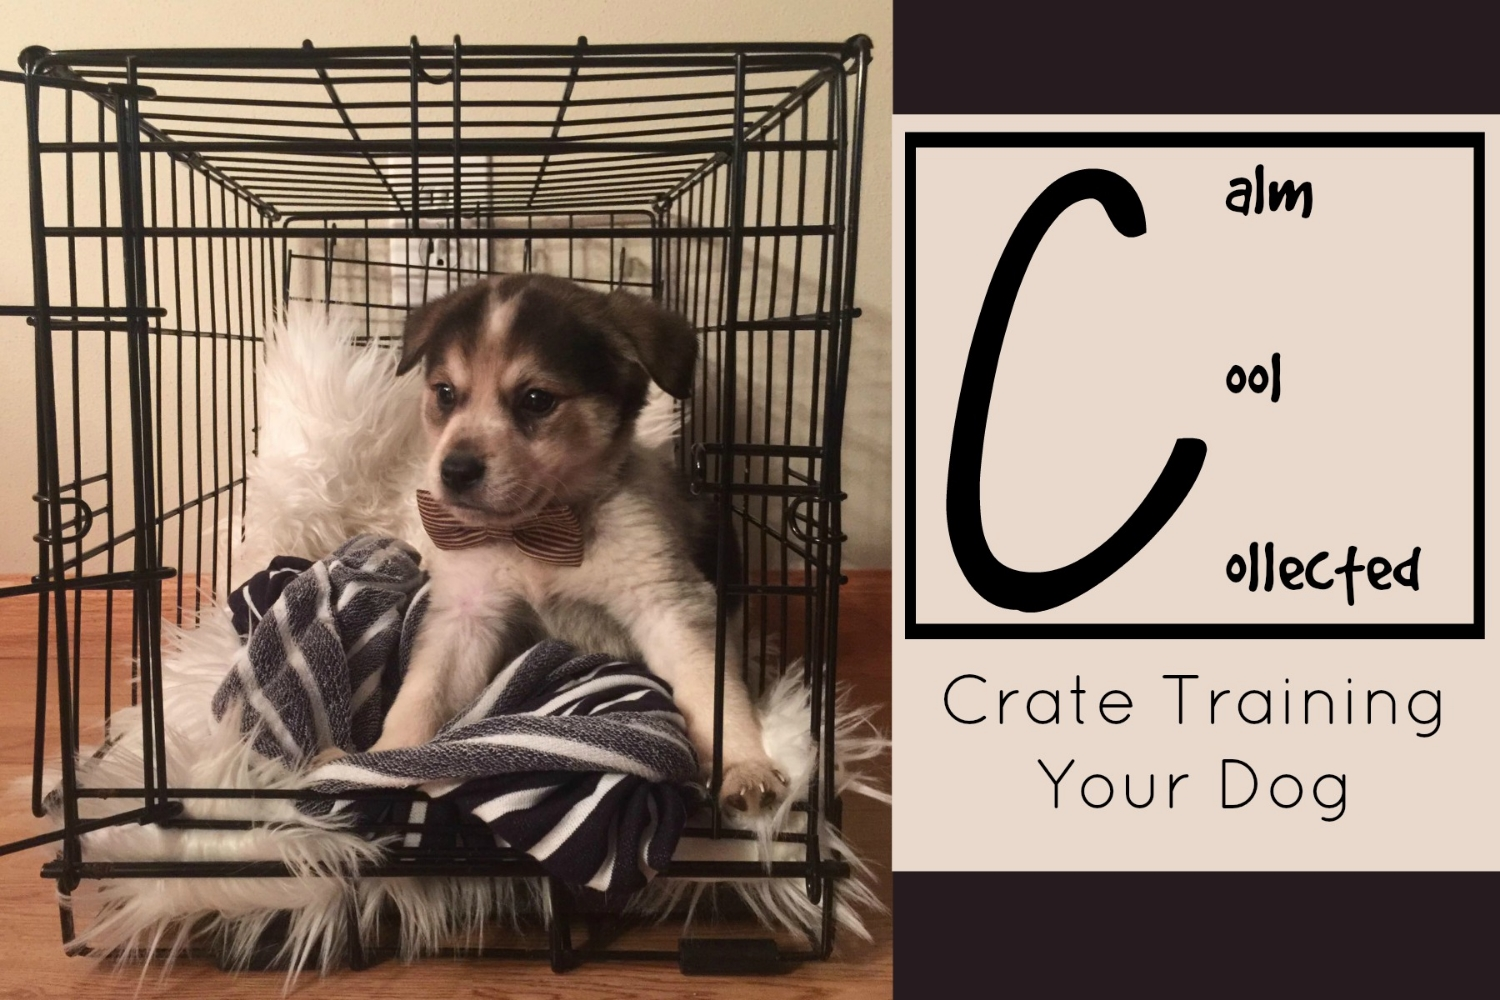 crate_training_title_image.jpg